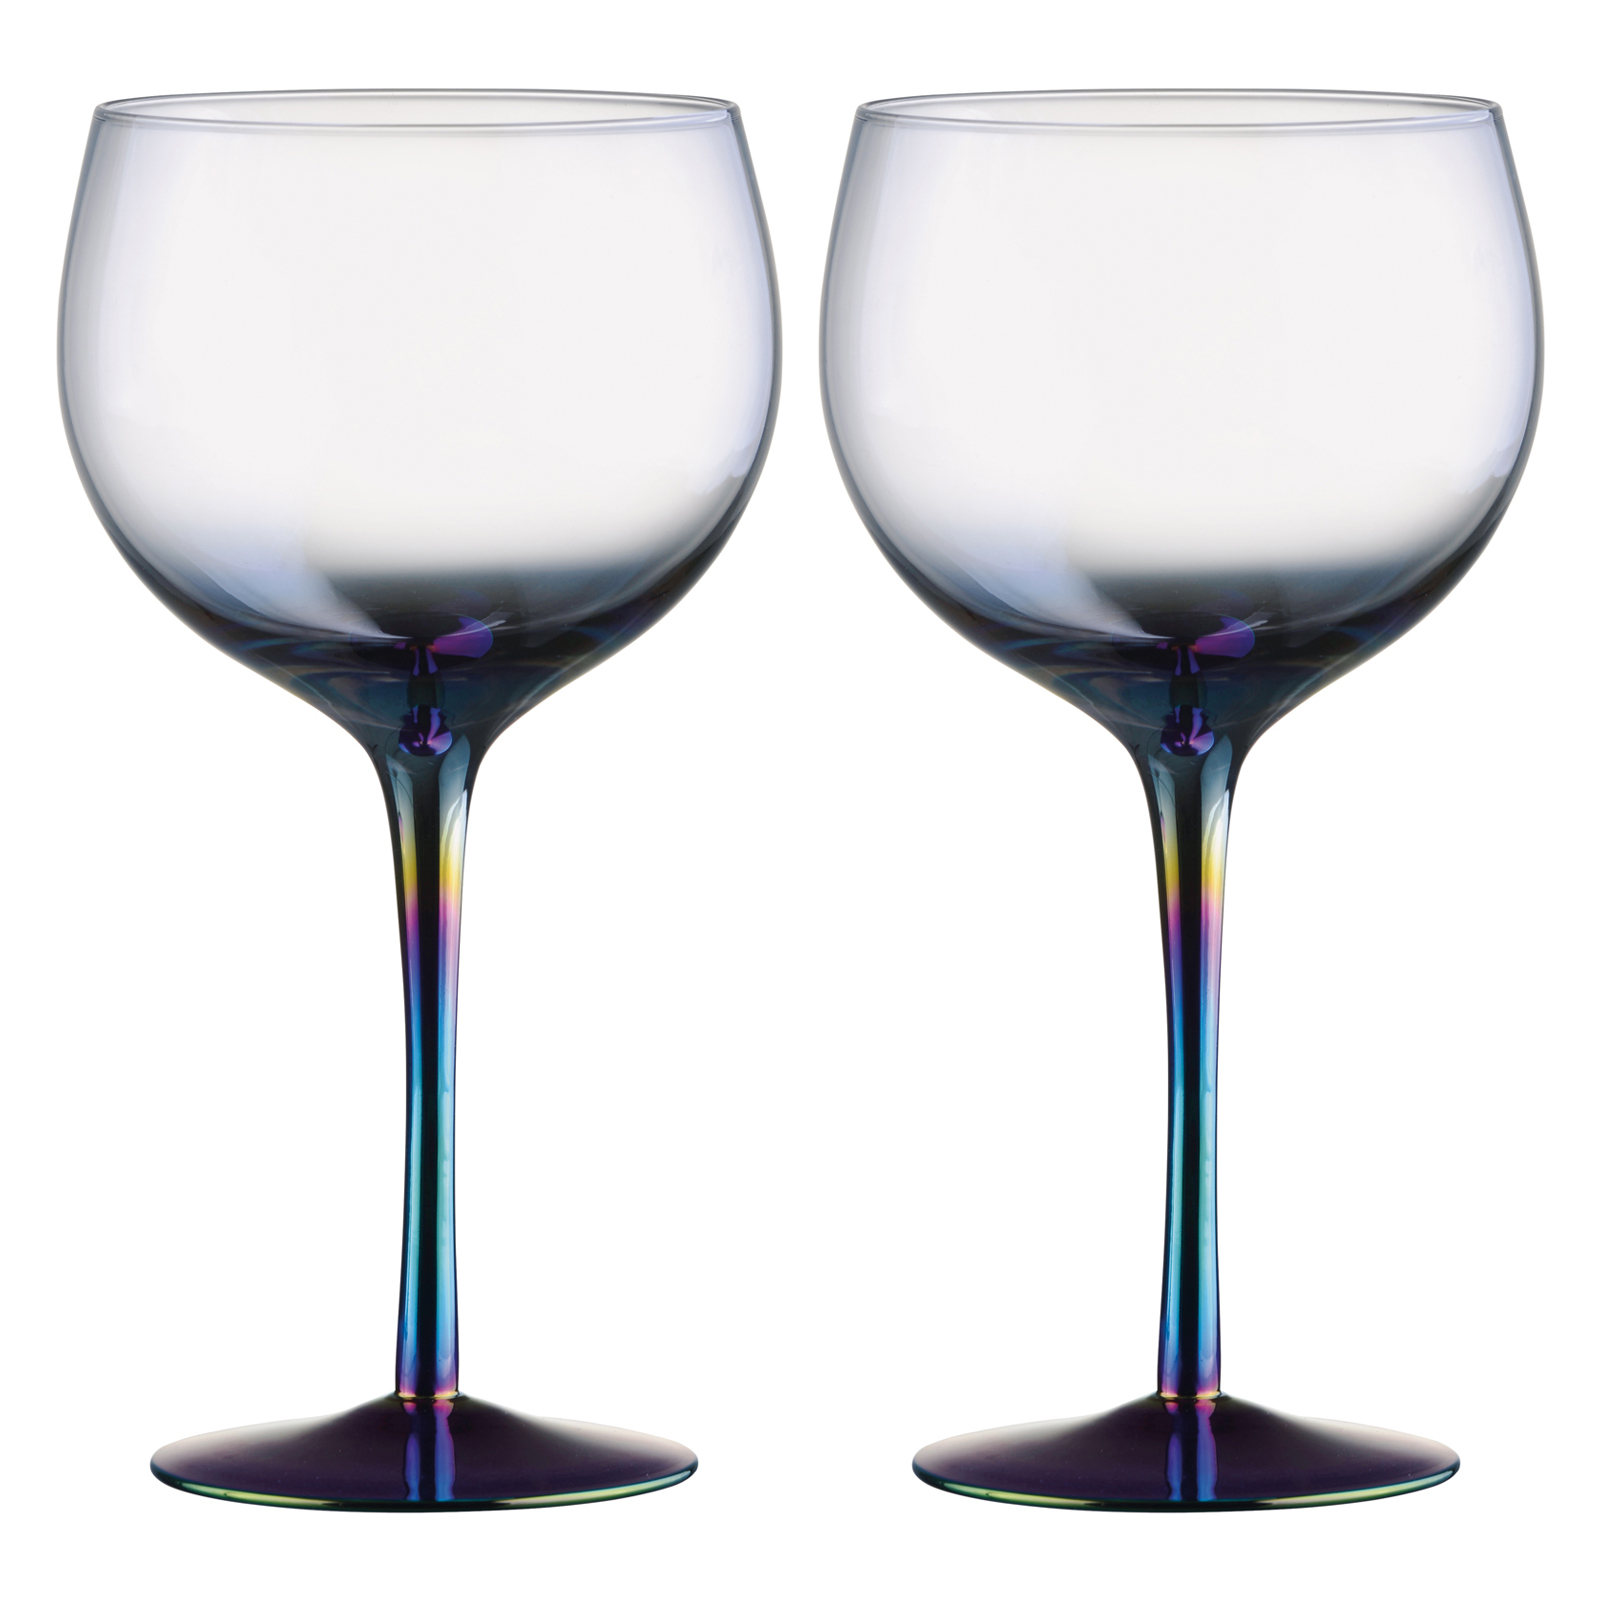 Set of 2 Mirage Gin Glasses by Artland